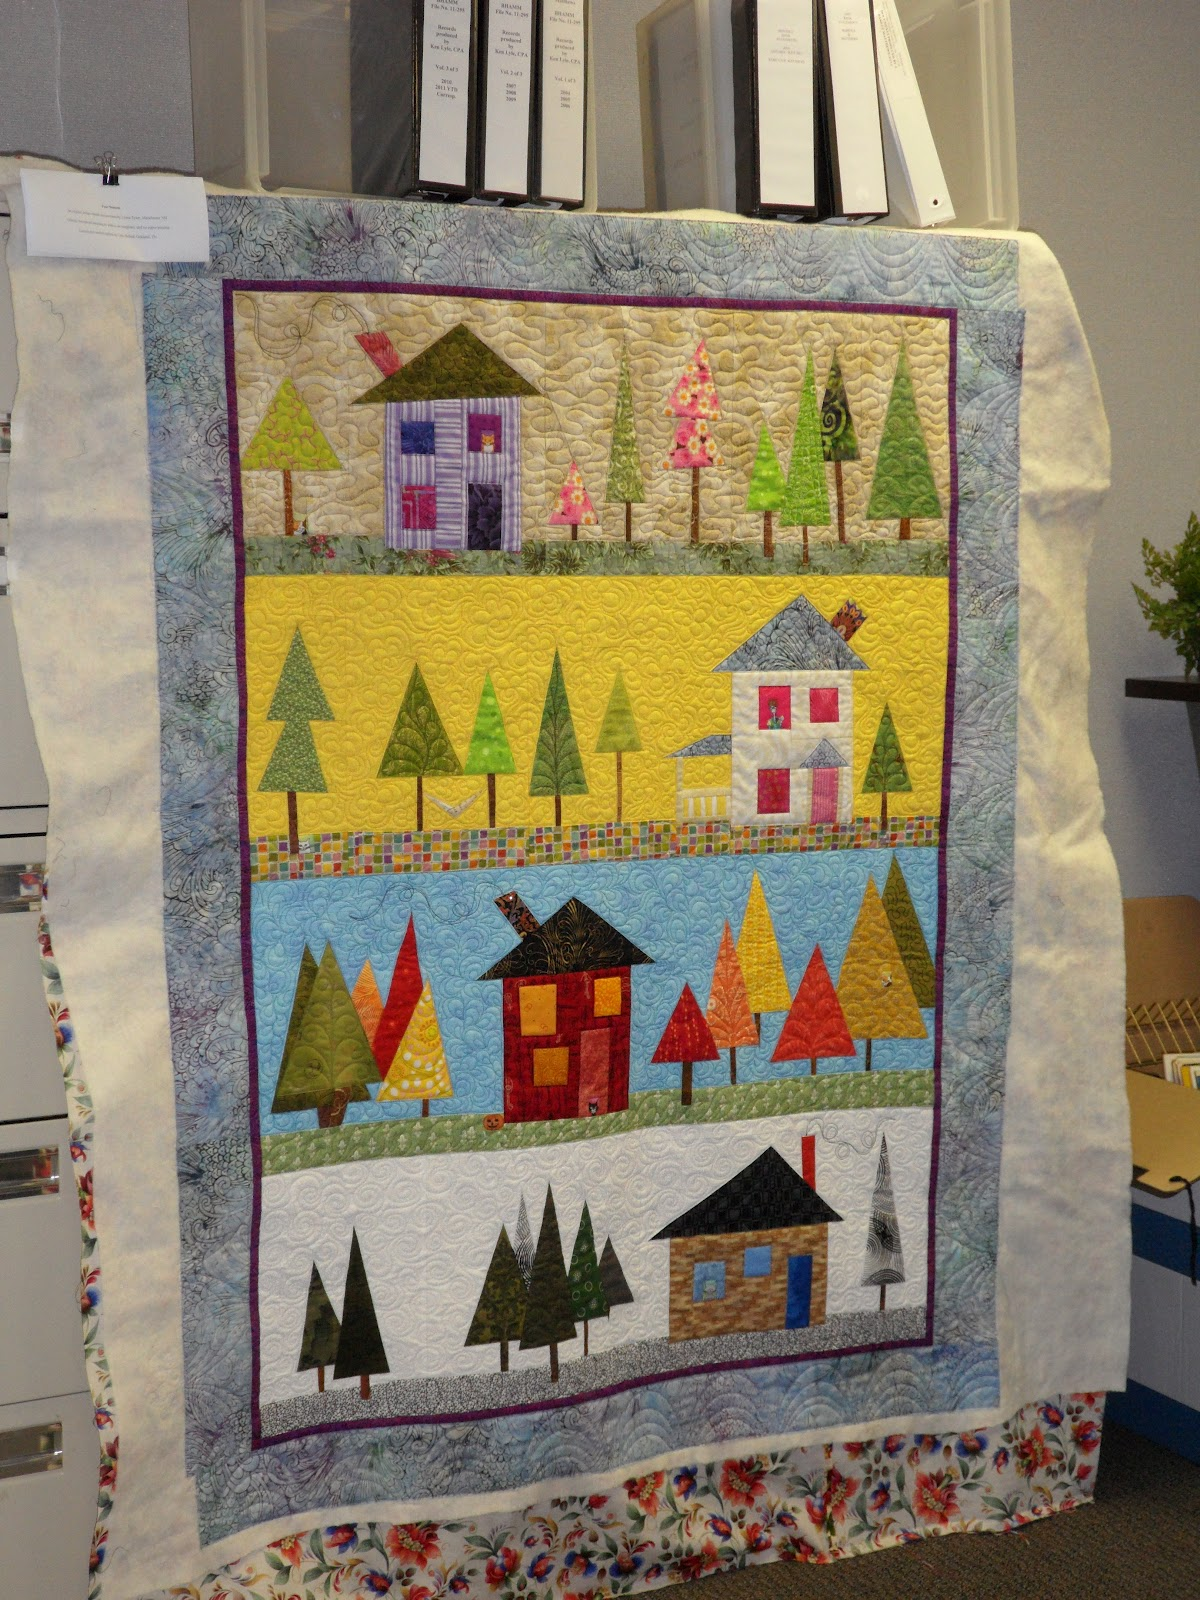 The Patchery Menagerie: Four Seasons Quilt